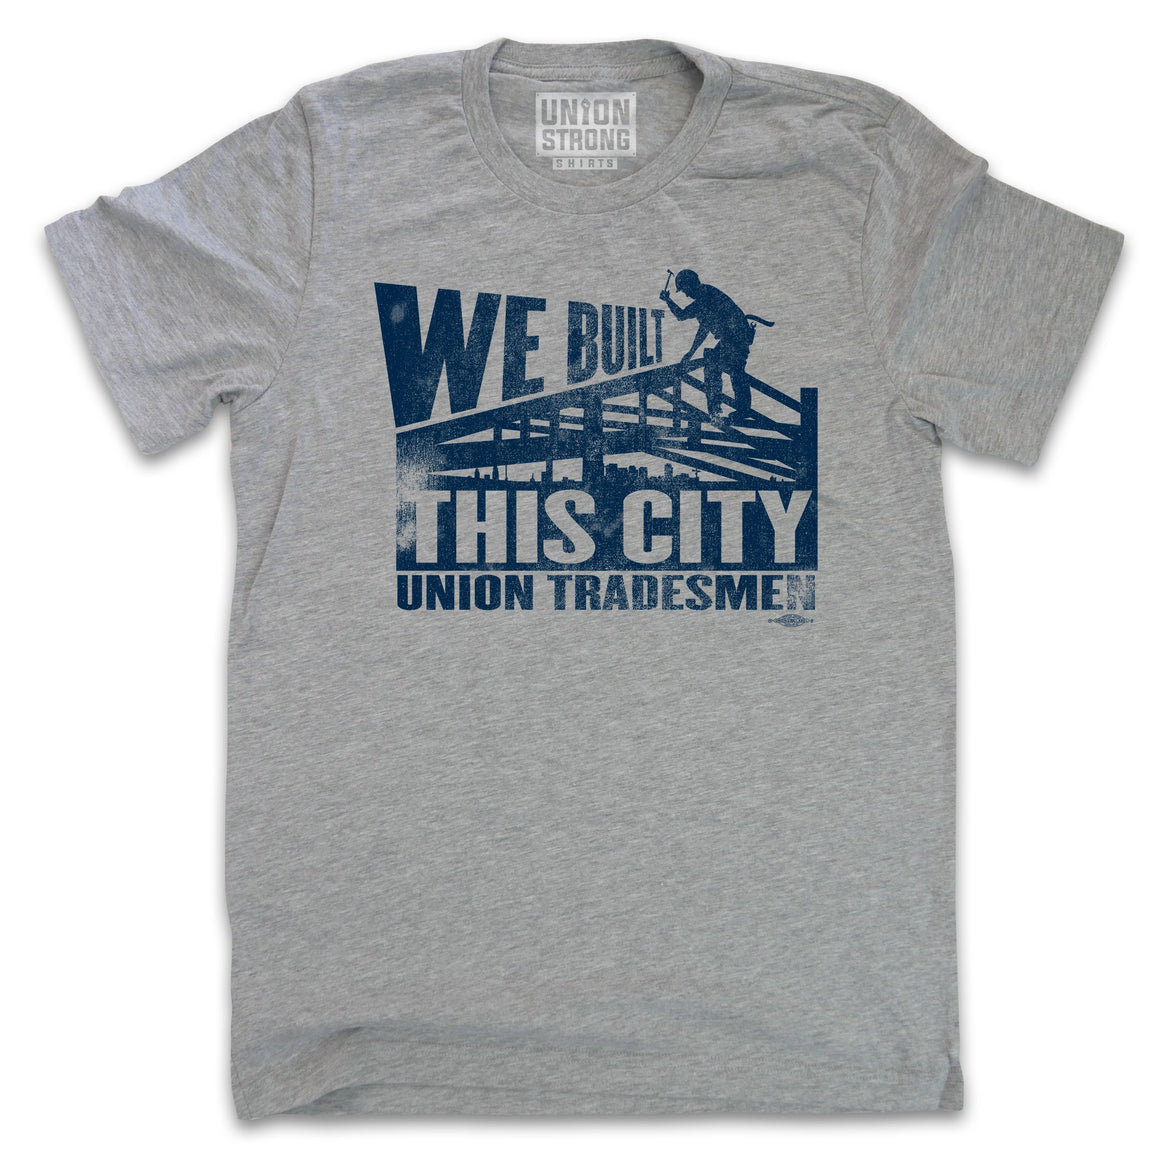 We Built This City - Union Tradesmen Shirts unionstrongshirts